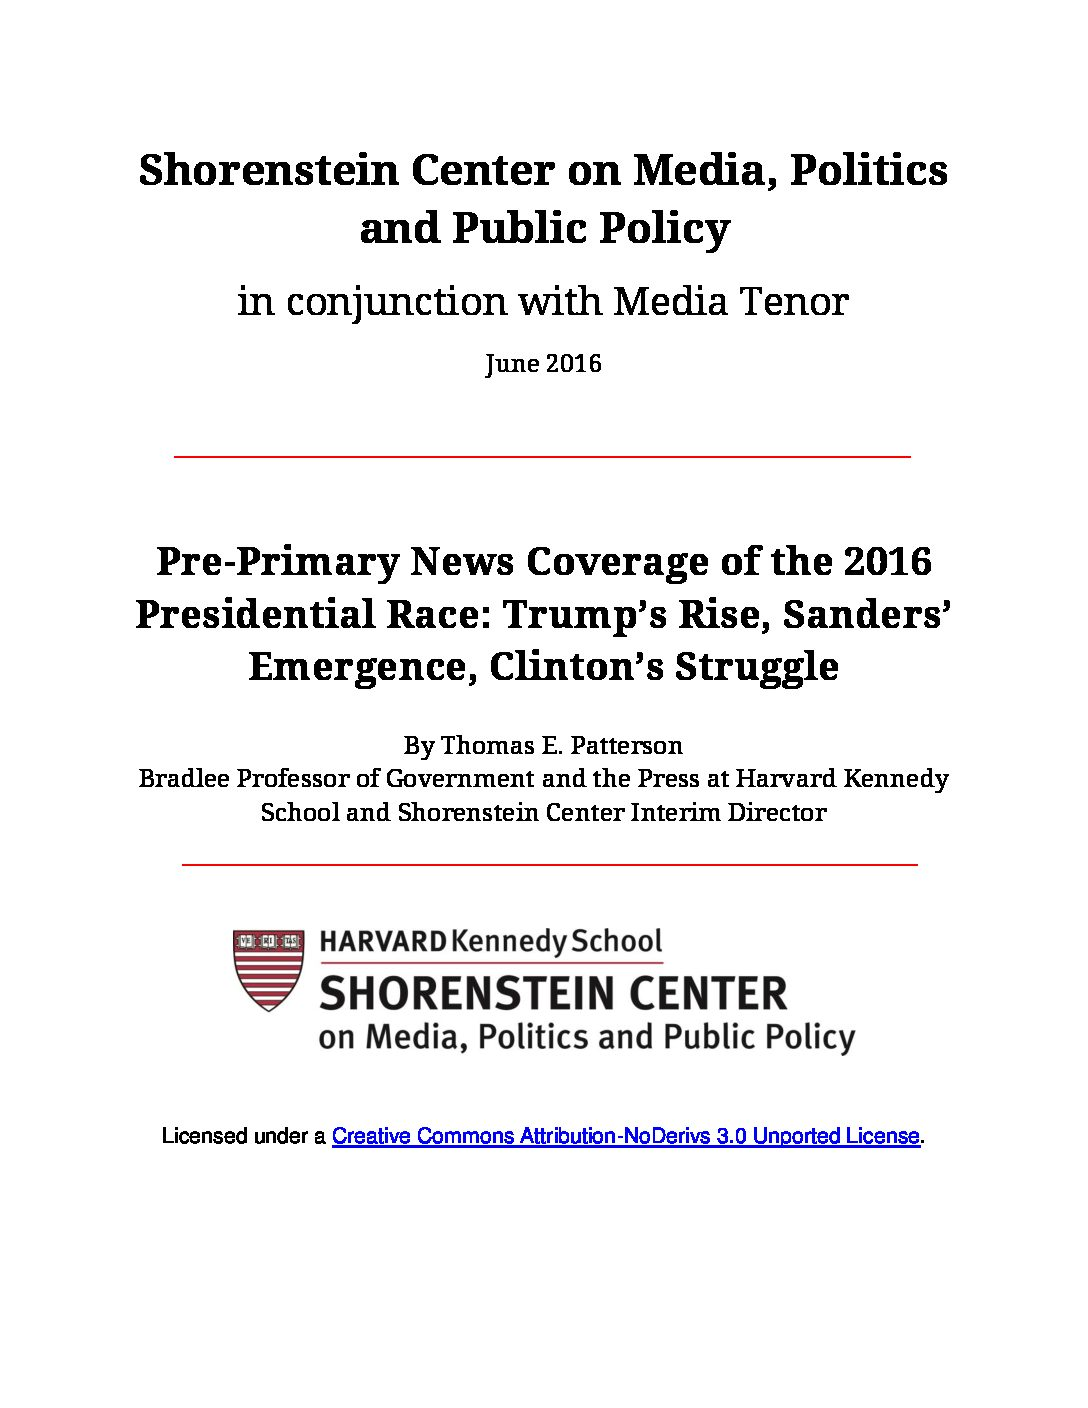 Pre-Primary News Coverage of the 2016 Presidential Race: Trump's Rise, Sanders' Emergence, Clinton's Struggle